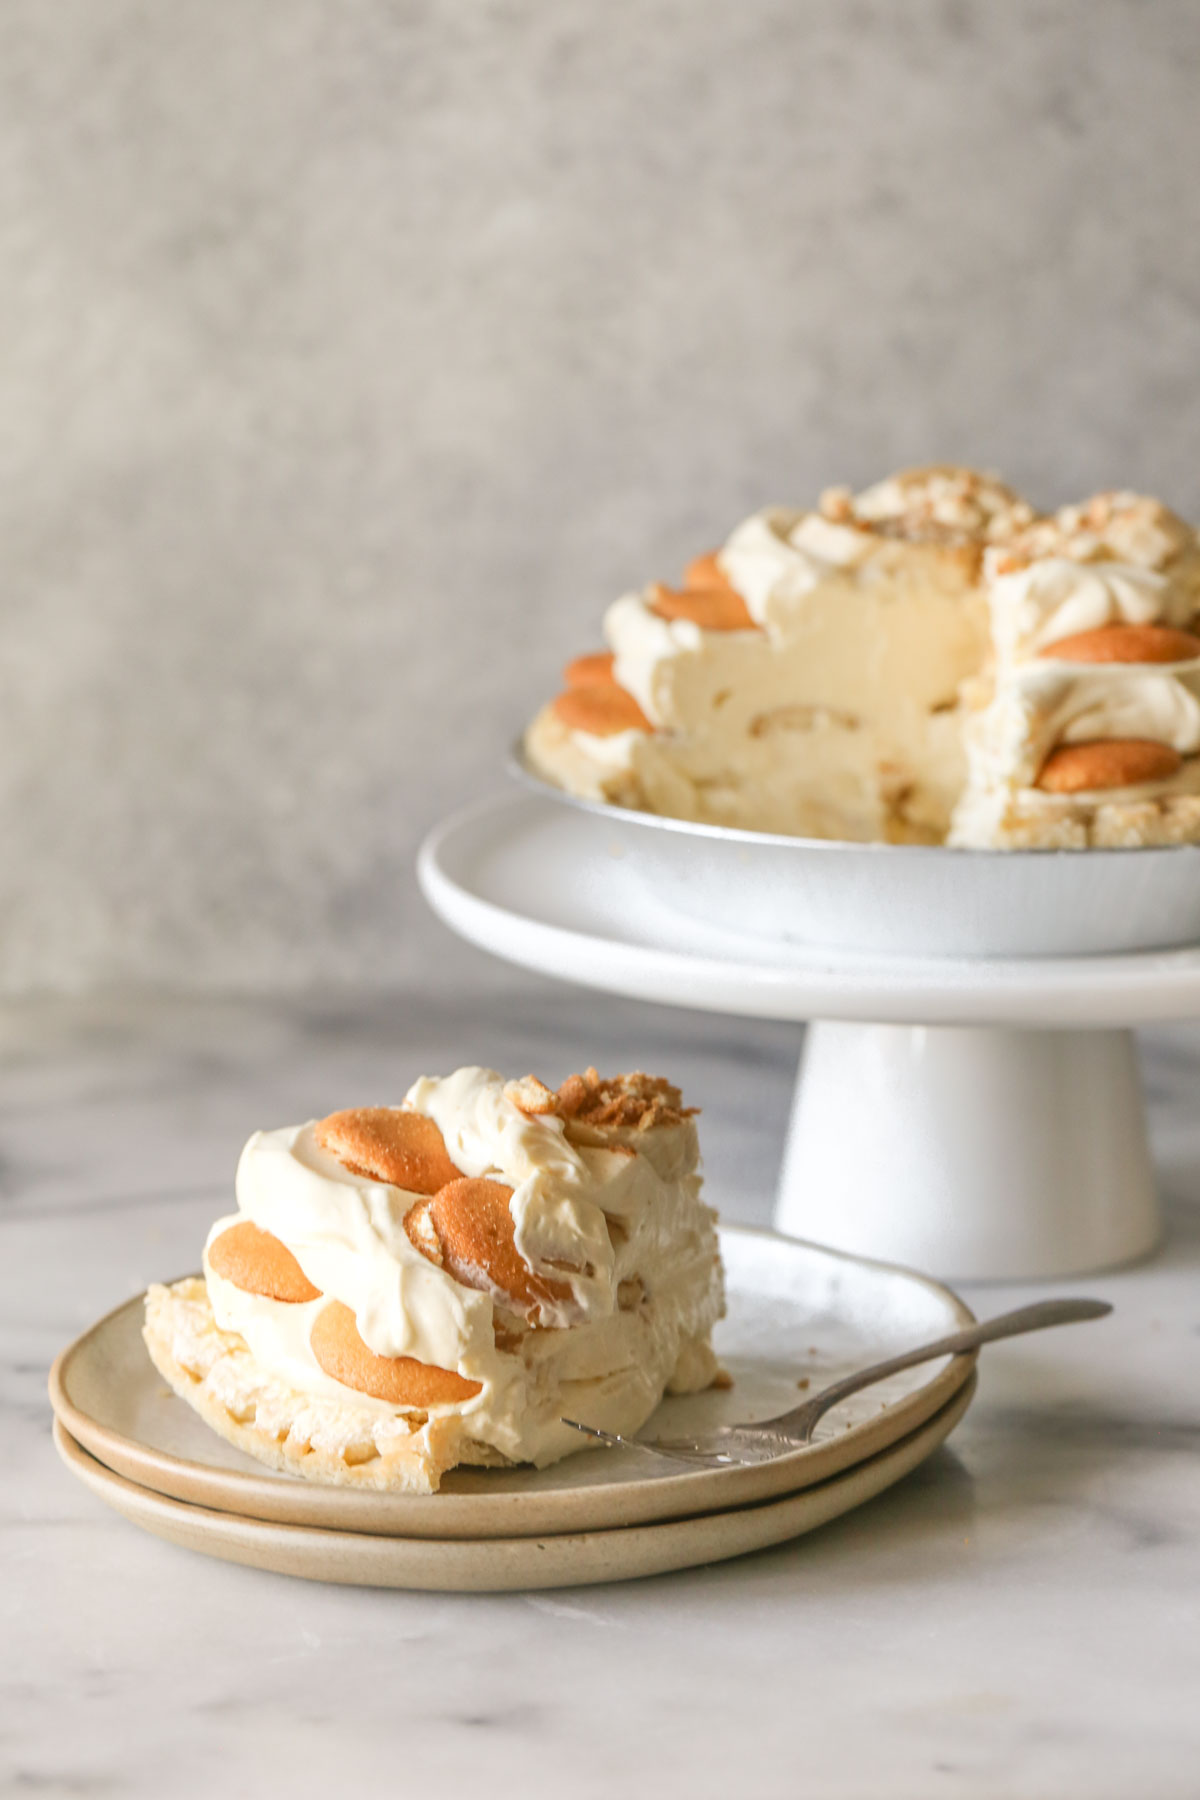 A piece of Mile High Banana Pudding Pie on a plate with a fork, and the rest of the Mile High Banana Pudding Pie on a white cake stand in the background.